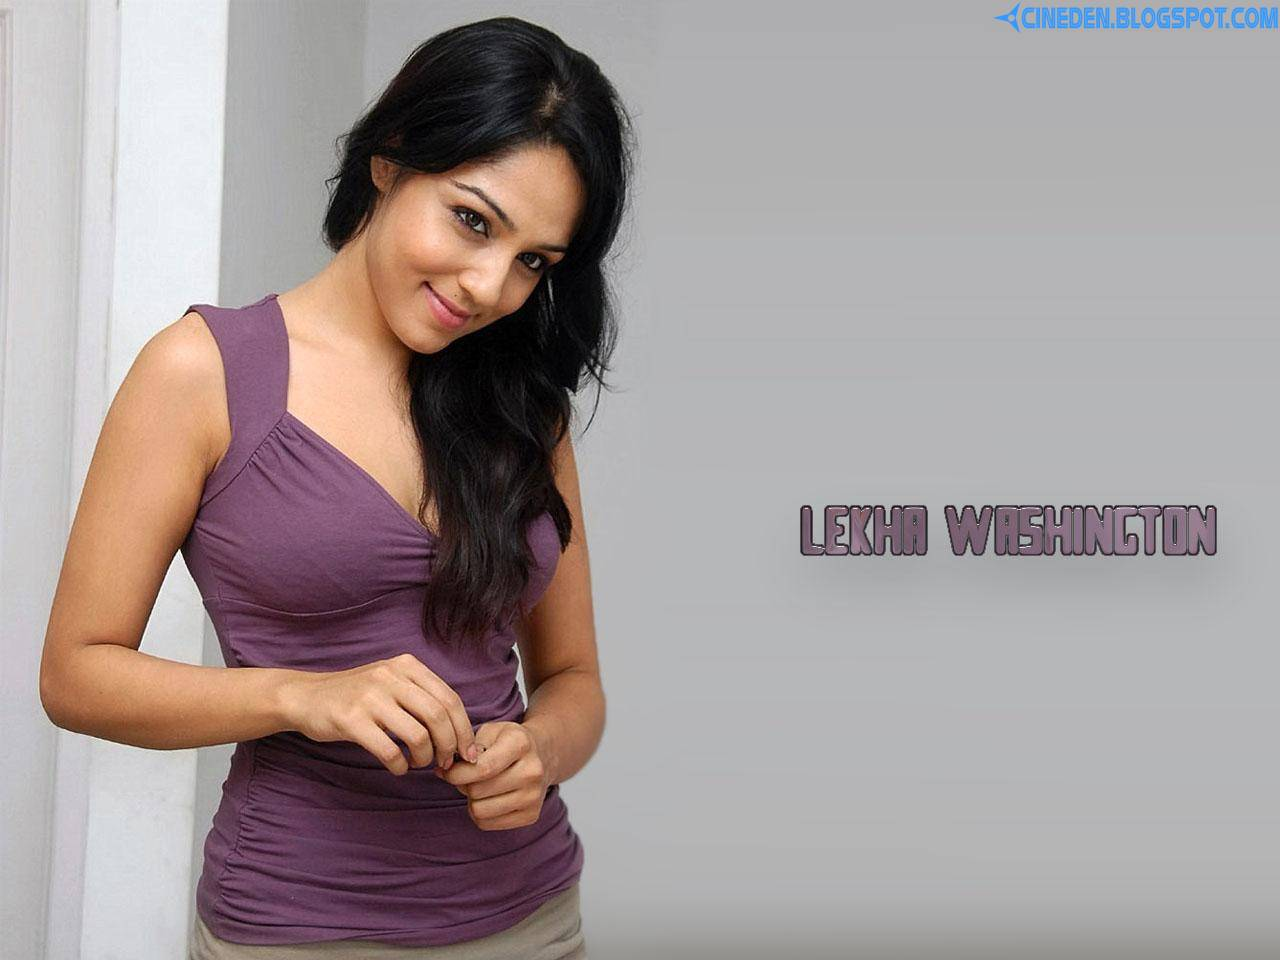 Lekha Washington has a Blast